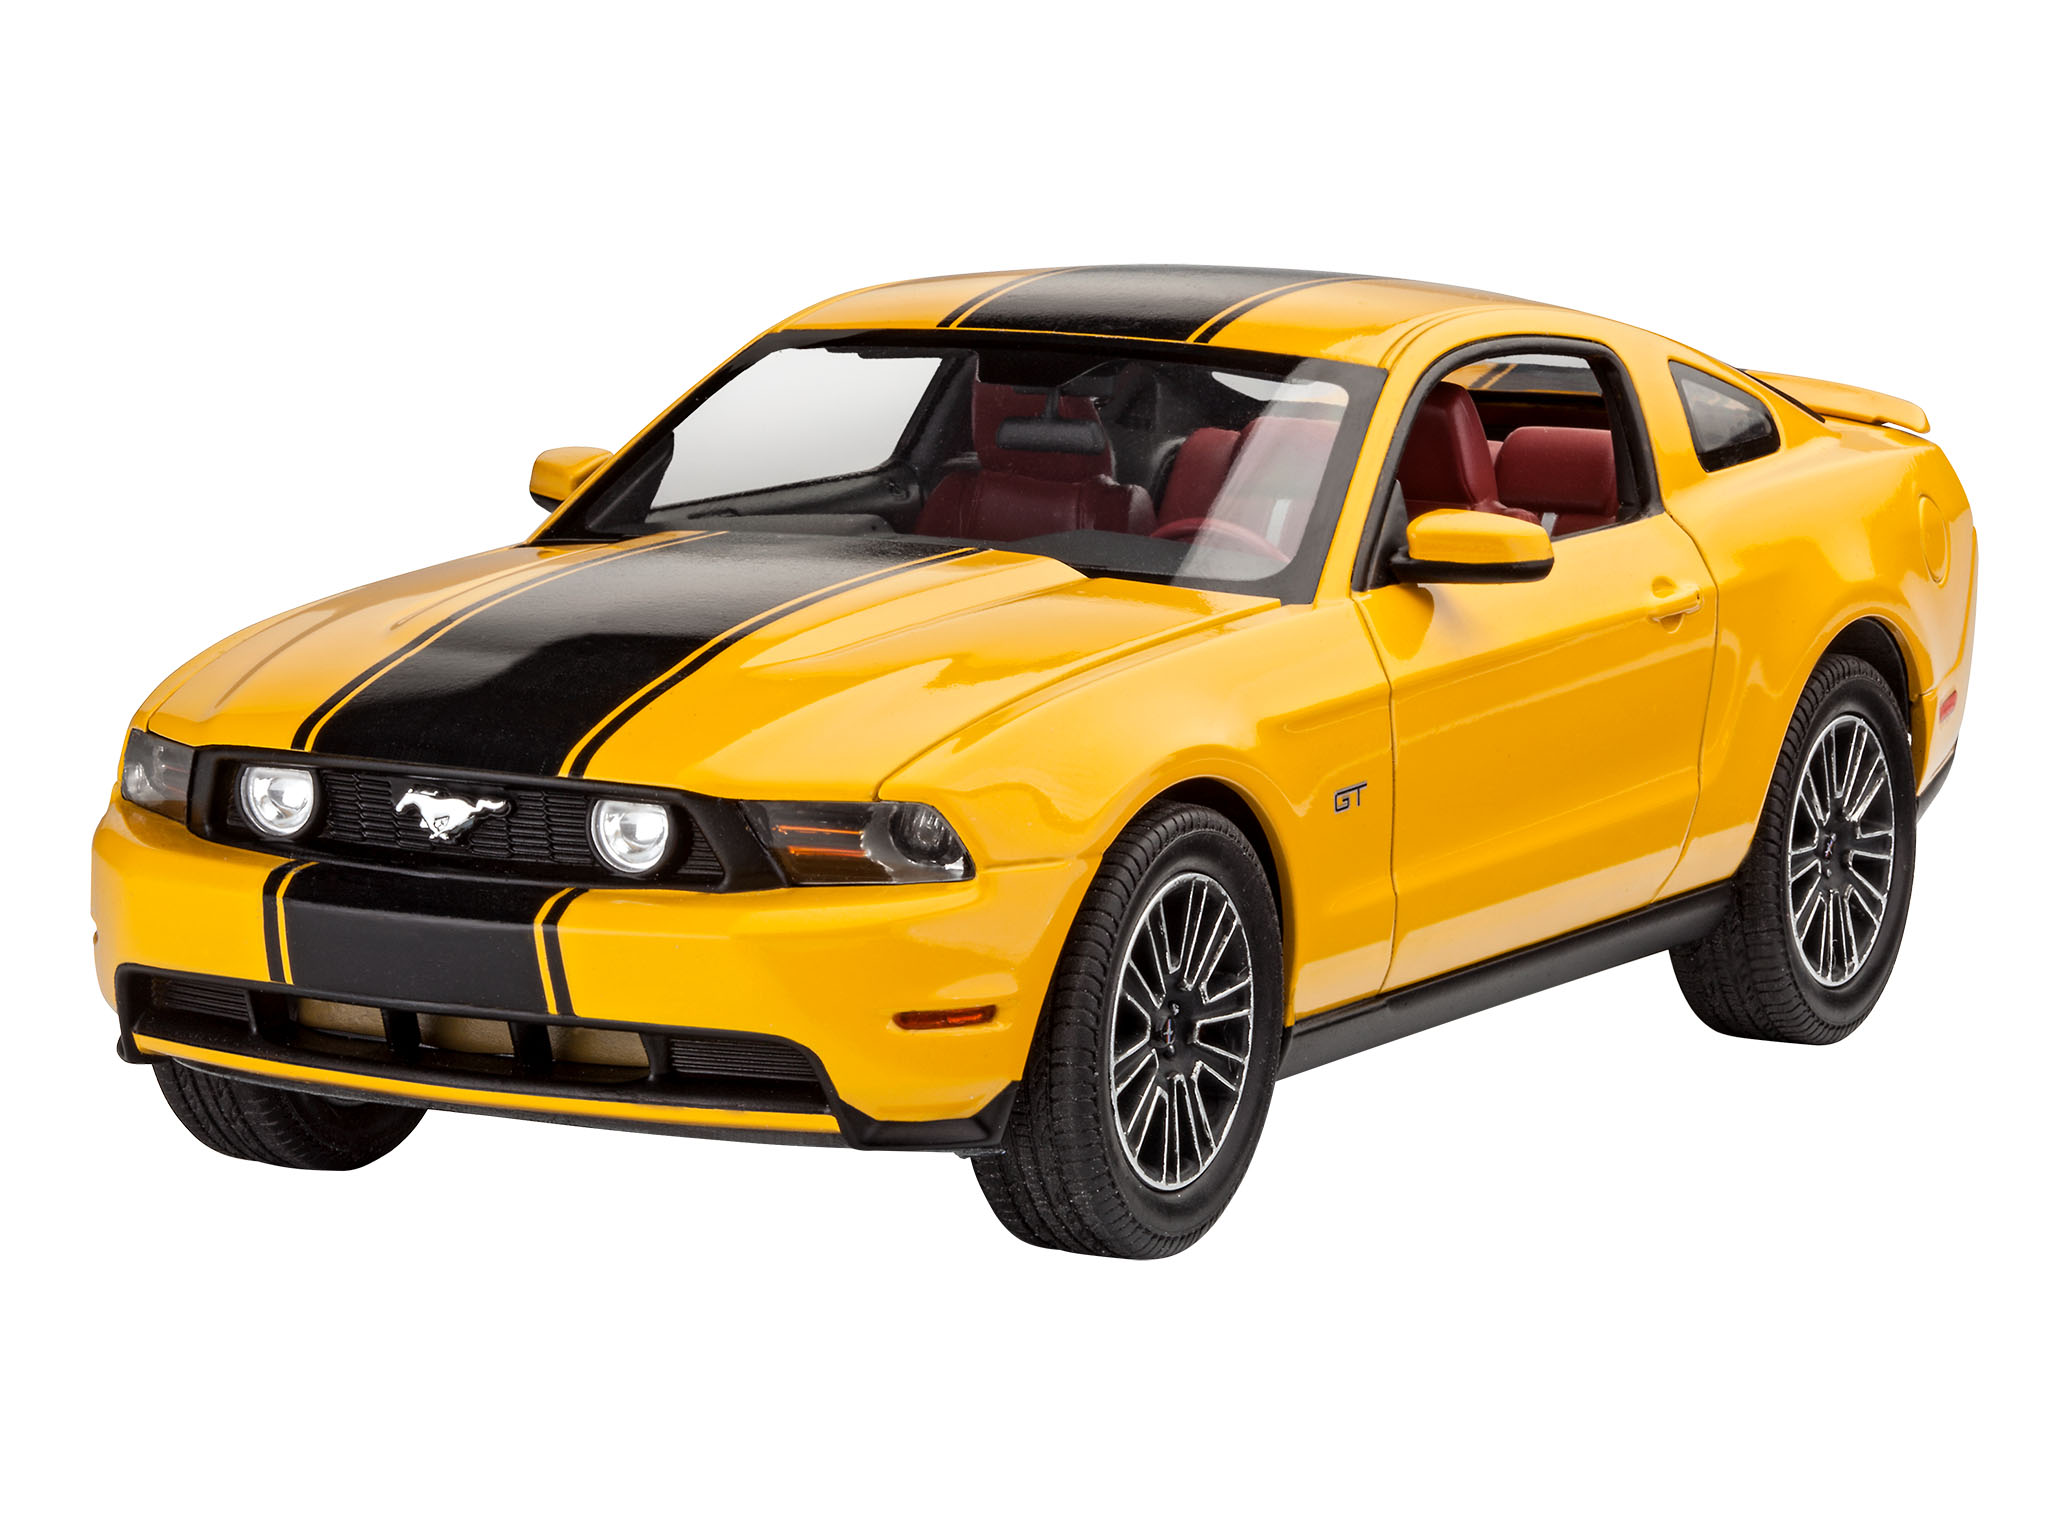 07046 smpw 2010 ford mustang gt jpg